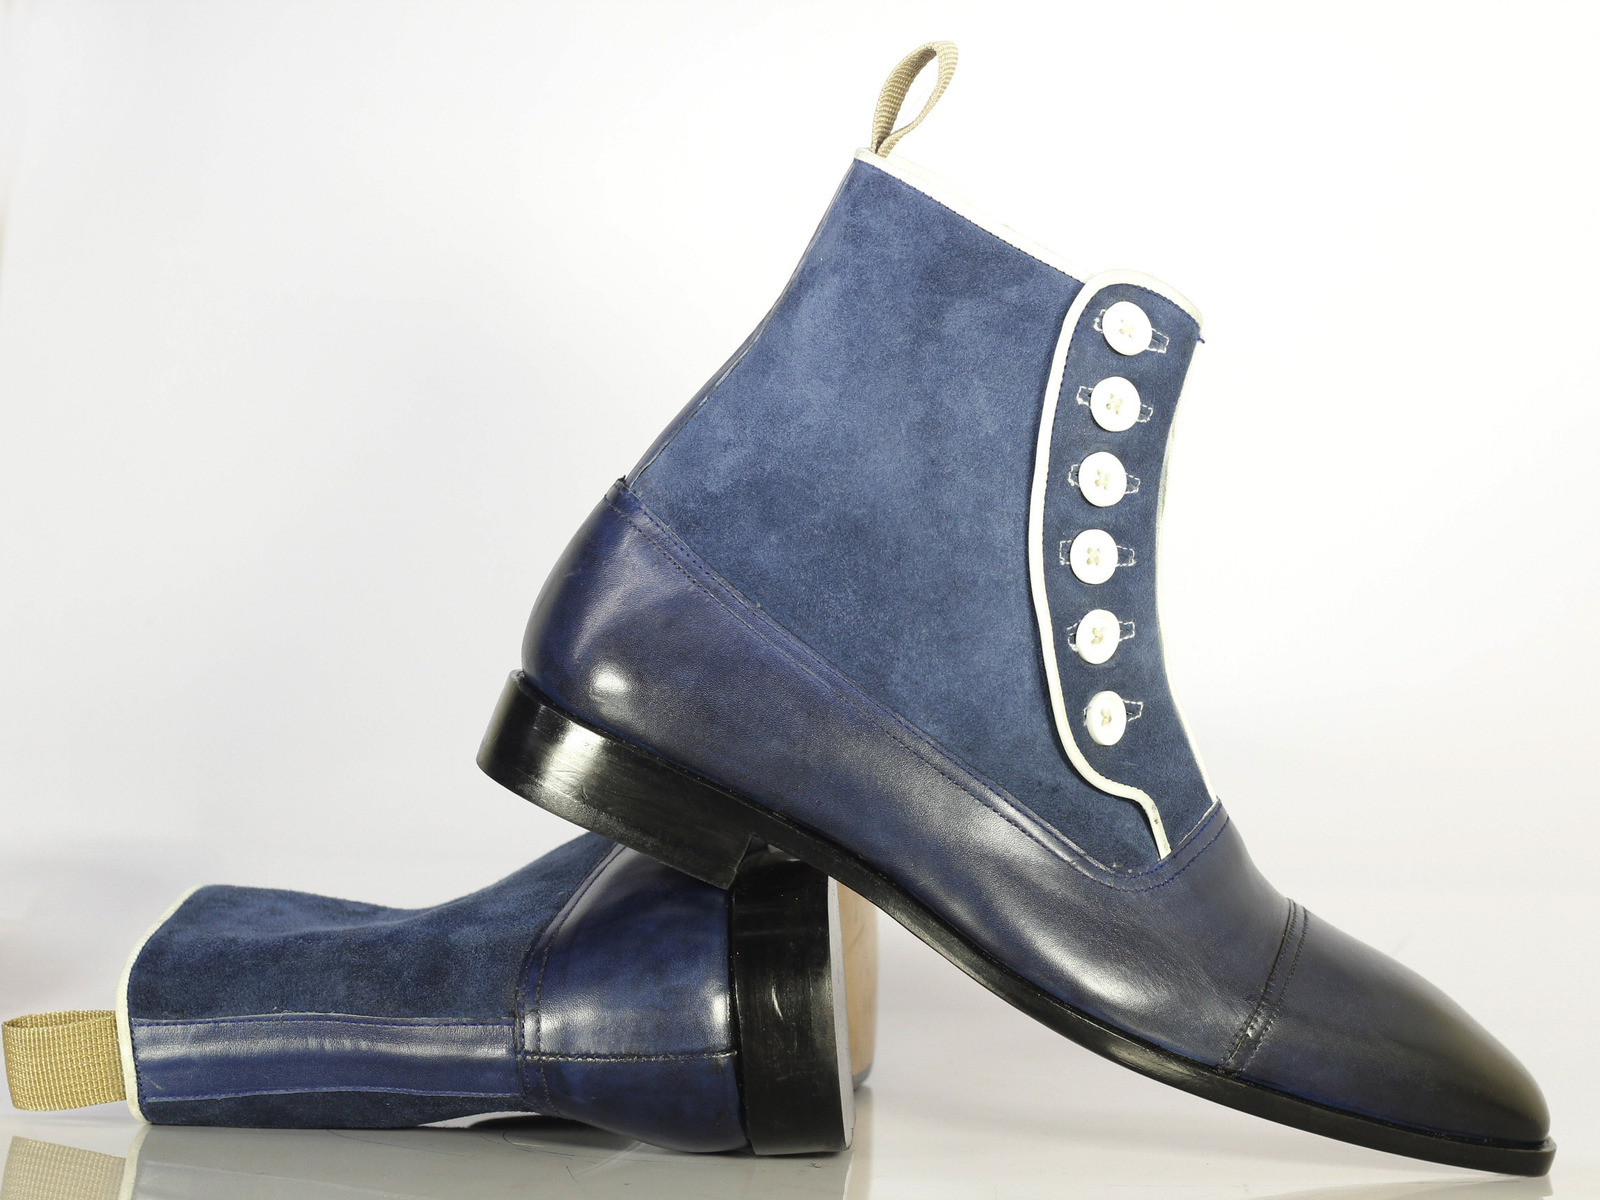 Primary image for Handmade Bespoke Men Navy Black Button top Ankle High Leather Boots